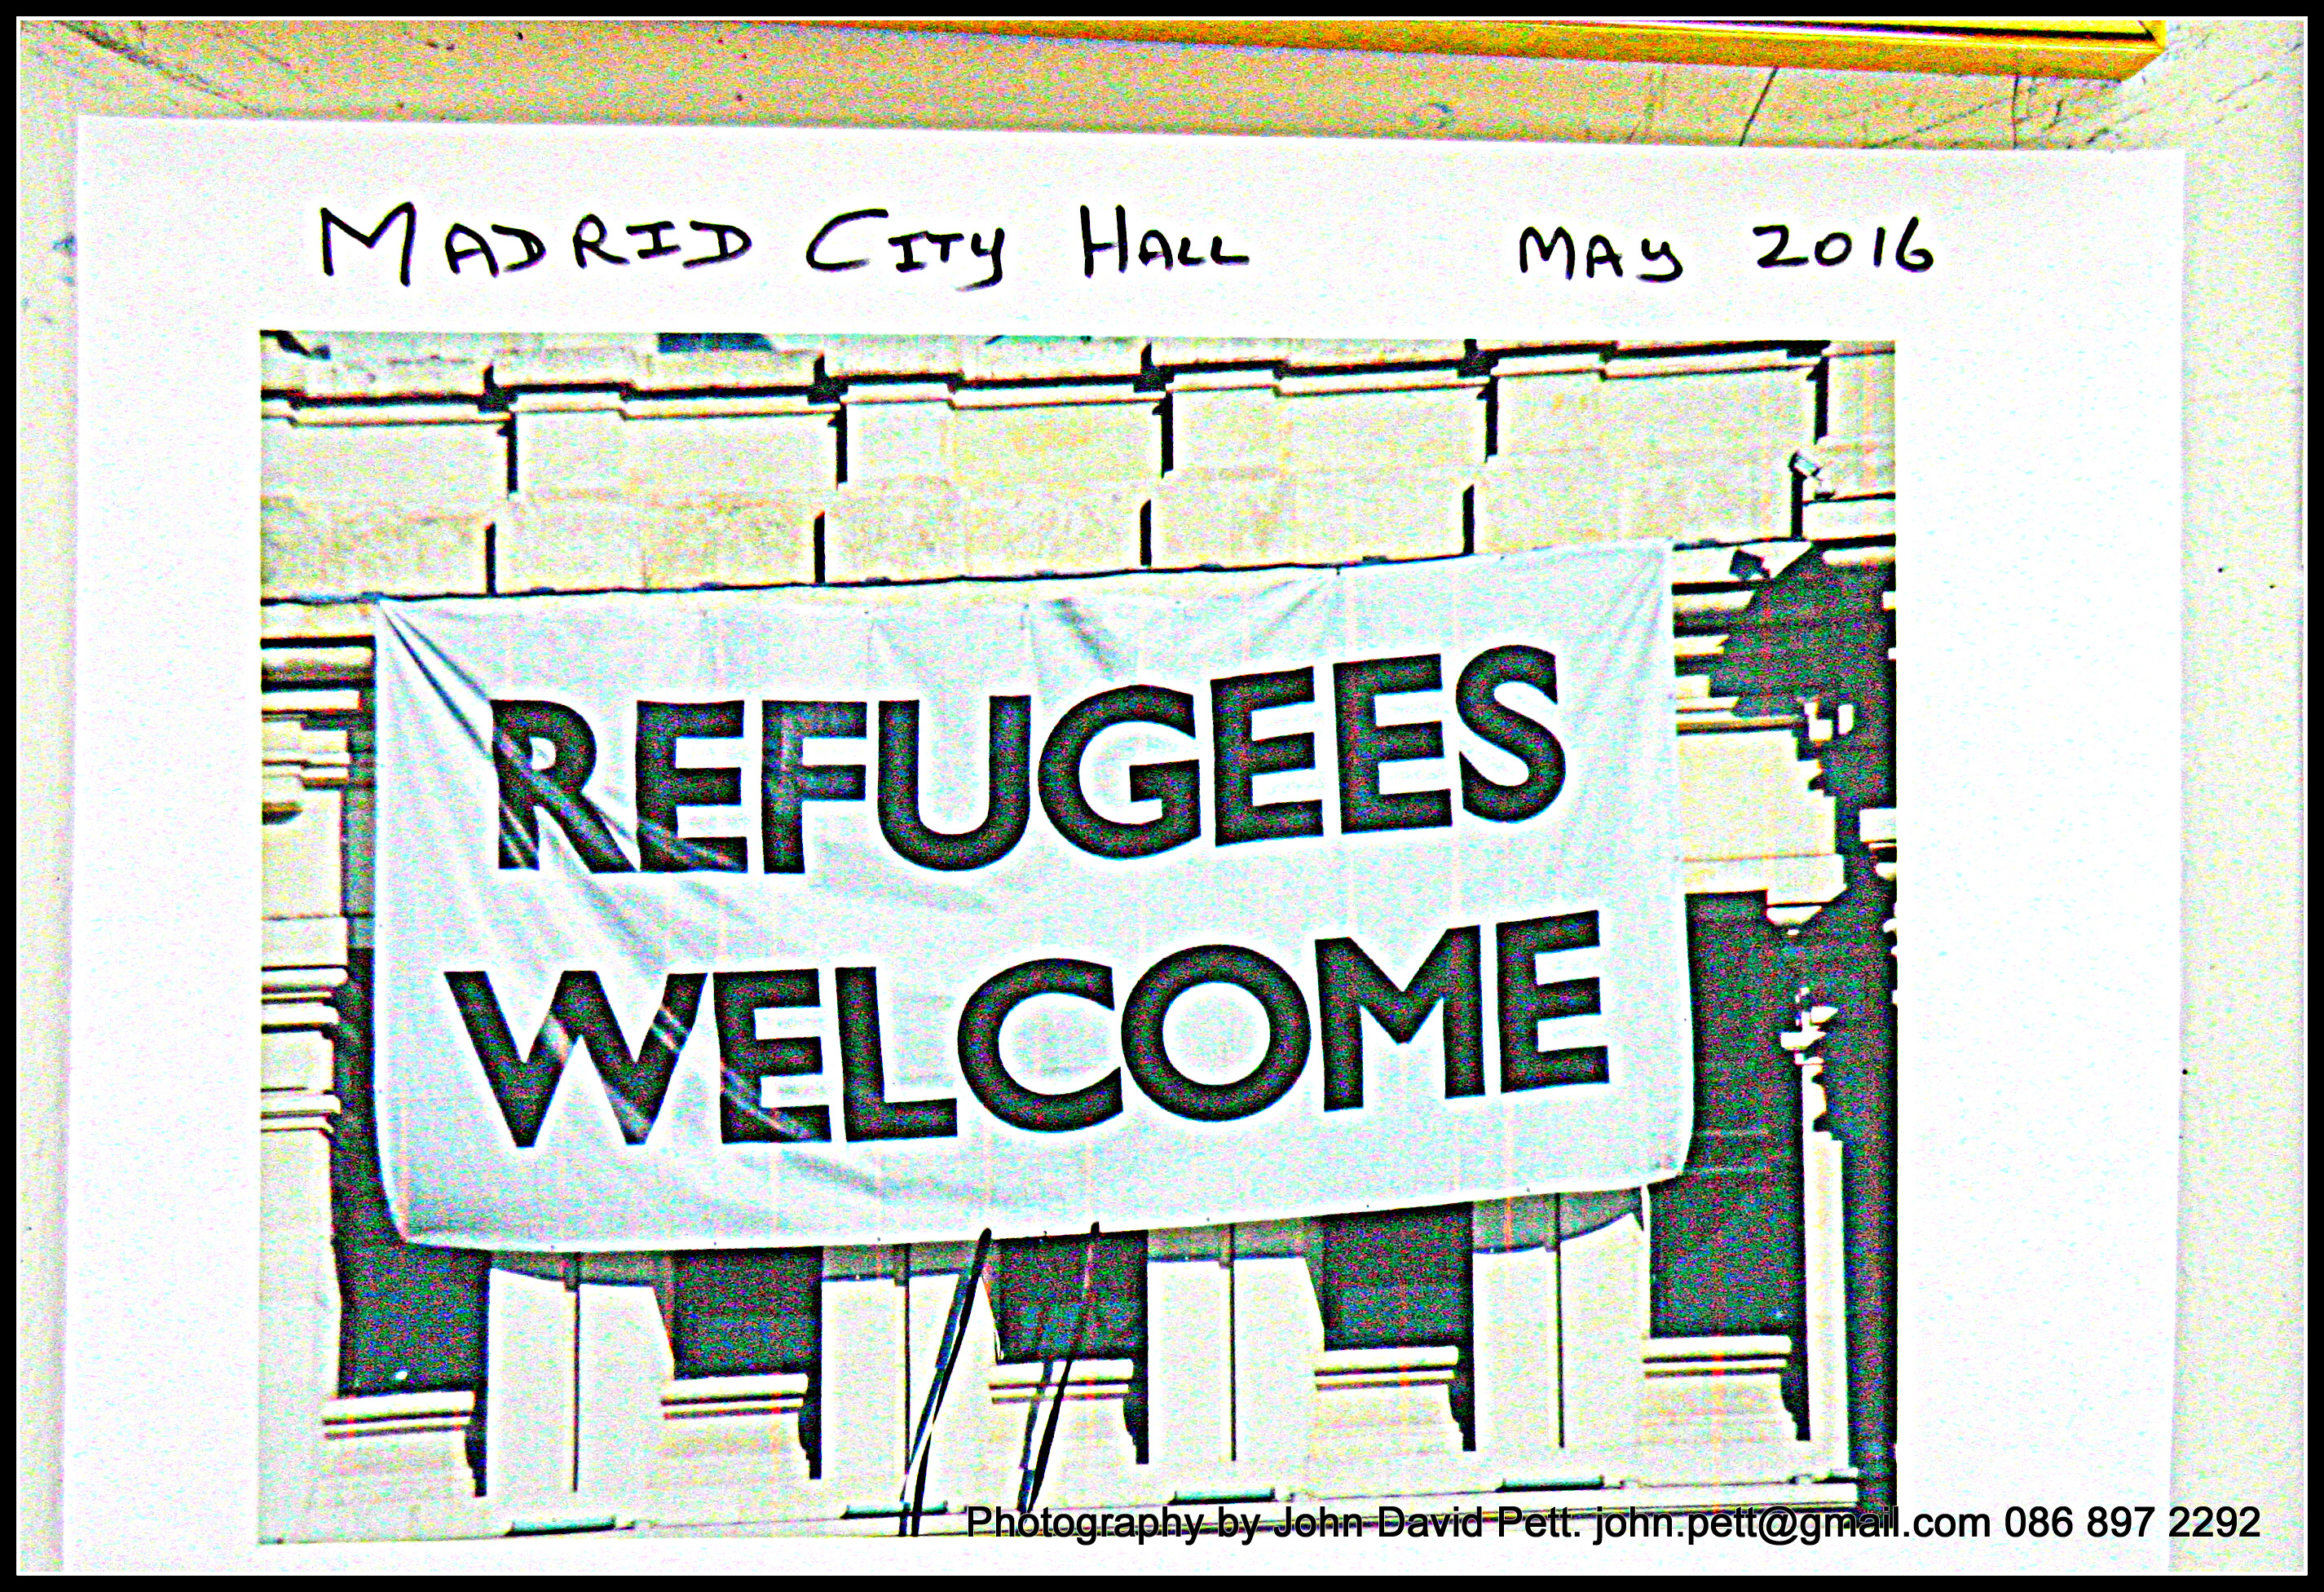 green-foundation-ireland-refugees-welcome-image